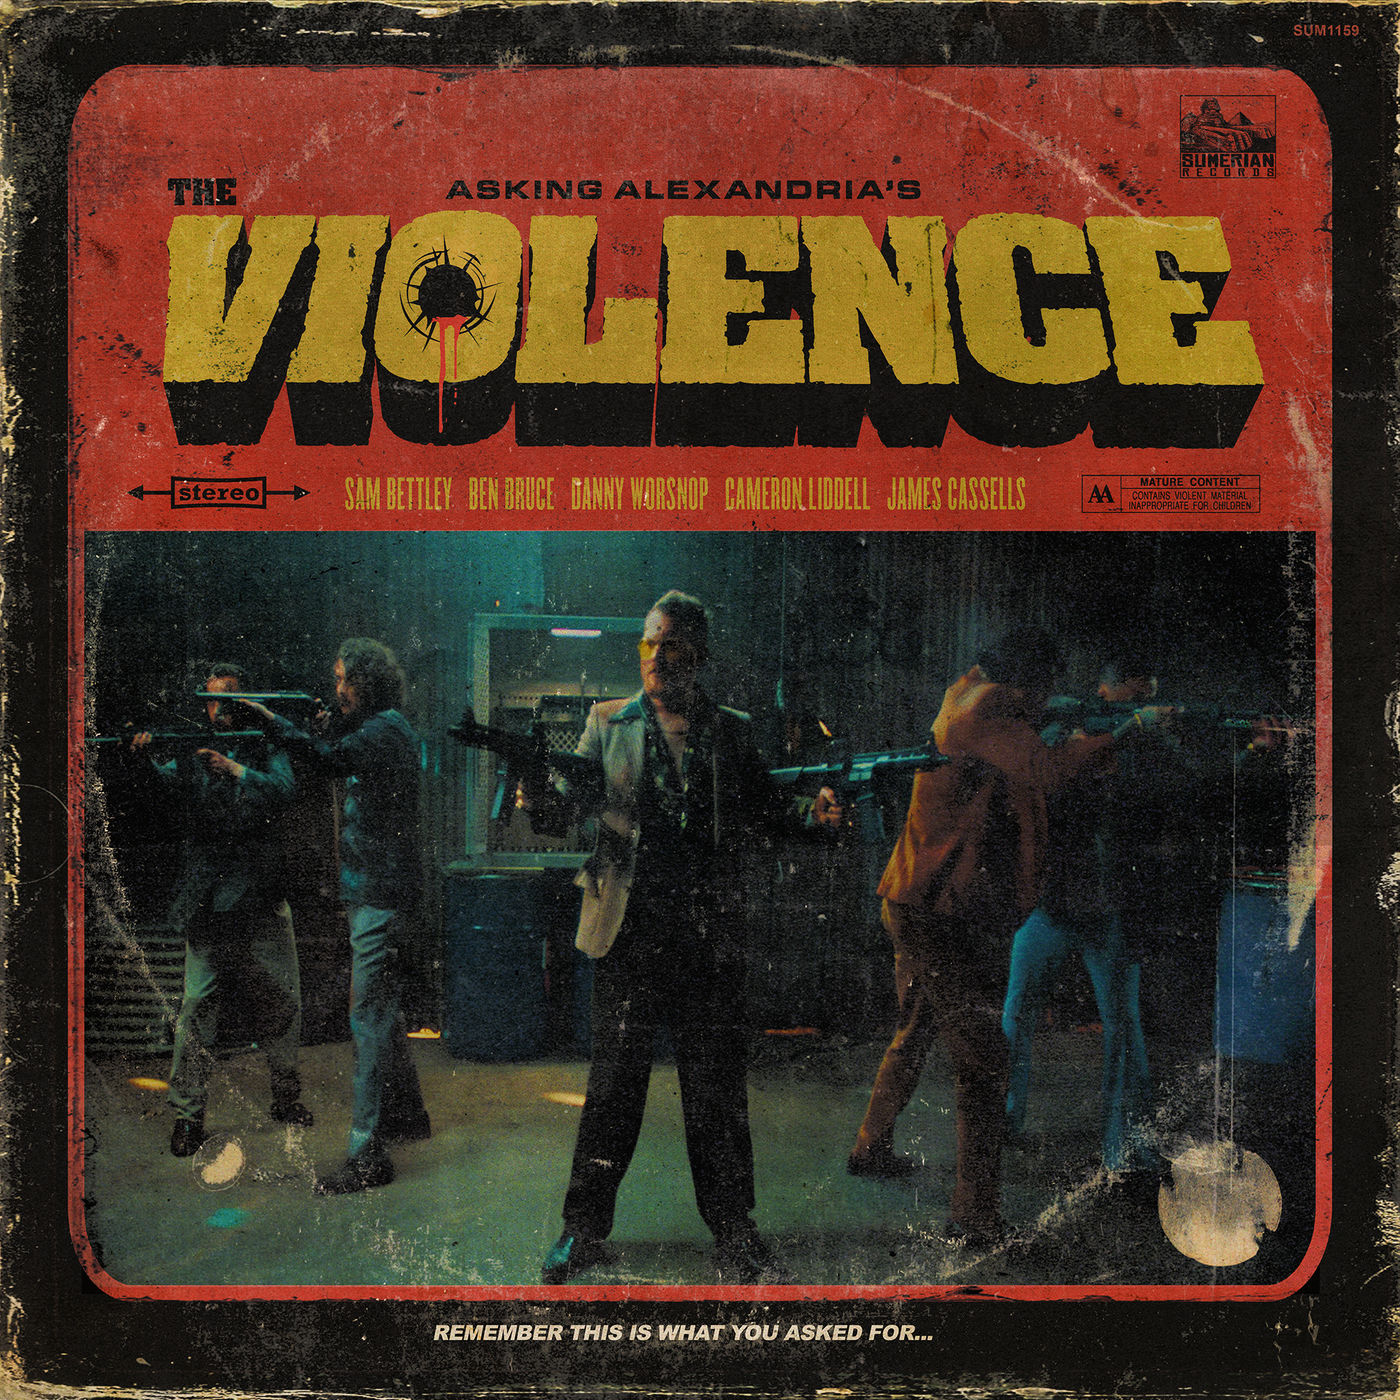 Asking Alexandria - The Violence [single] (2019)